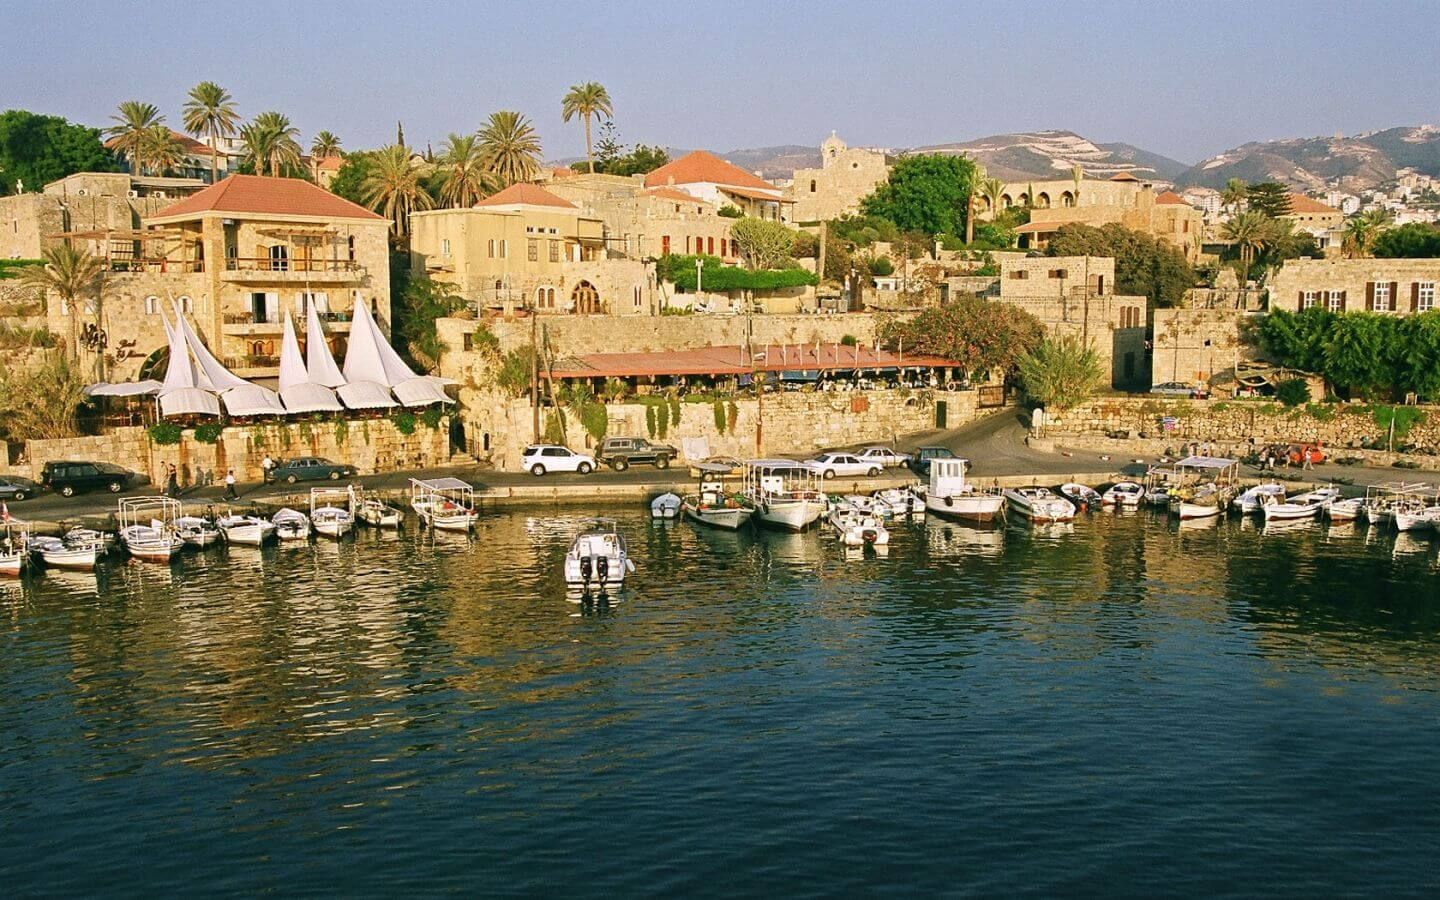 Byblos+Lebanon+An+Oldest+Inhabitant+City